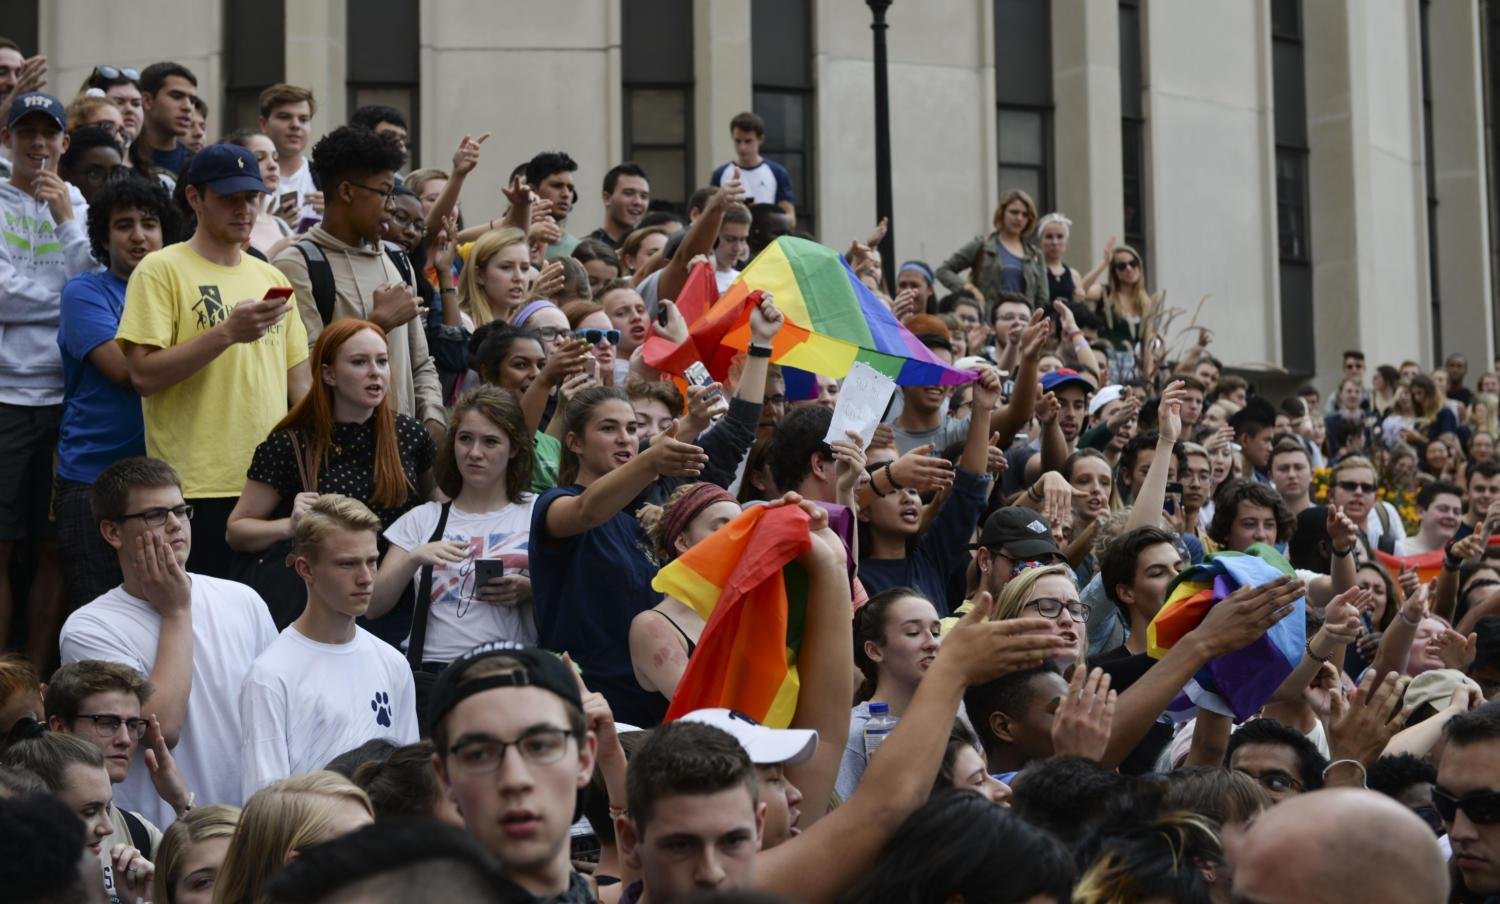 Students hold pride flags and chant at protesters across from Towers. (Photo by Wenhao Wu | Assistant Visual Editor)